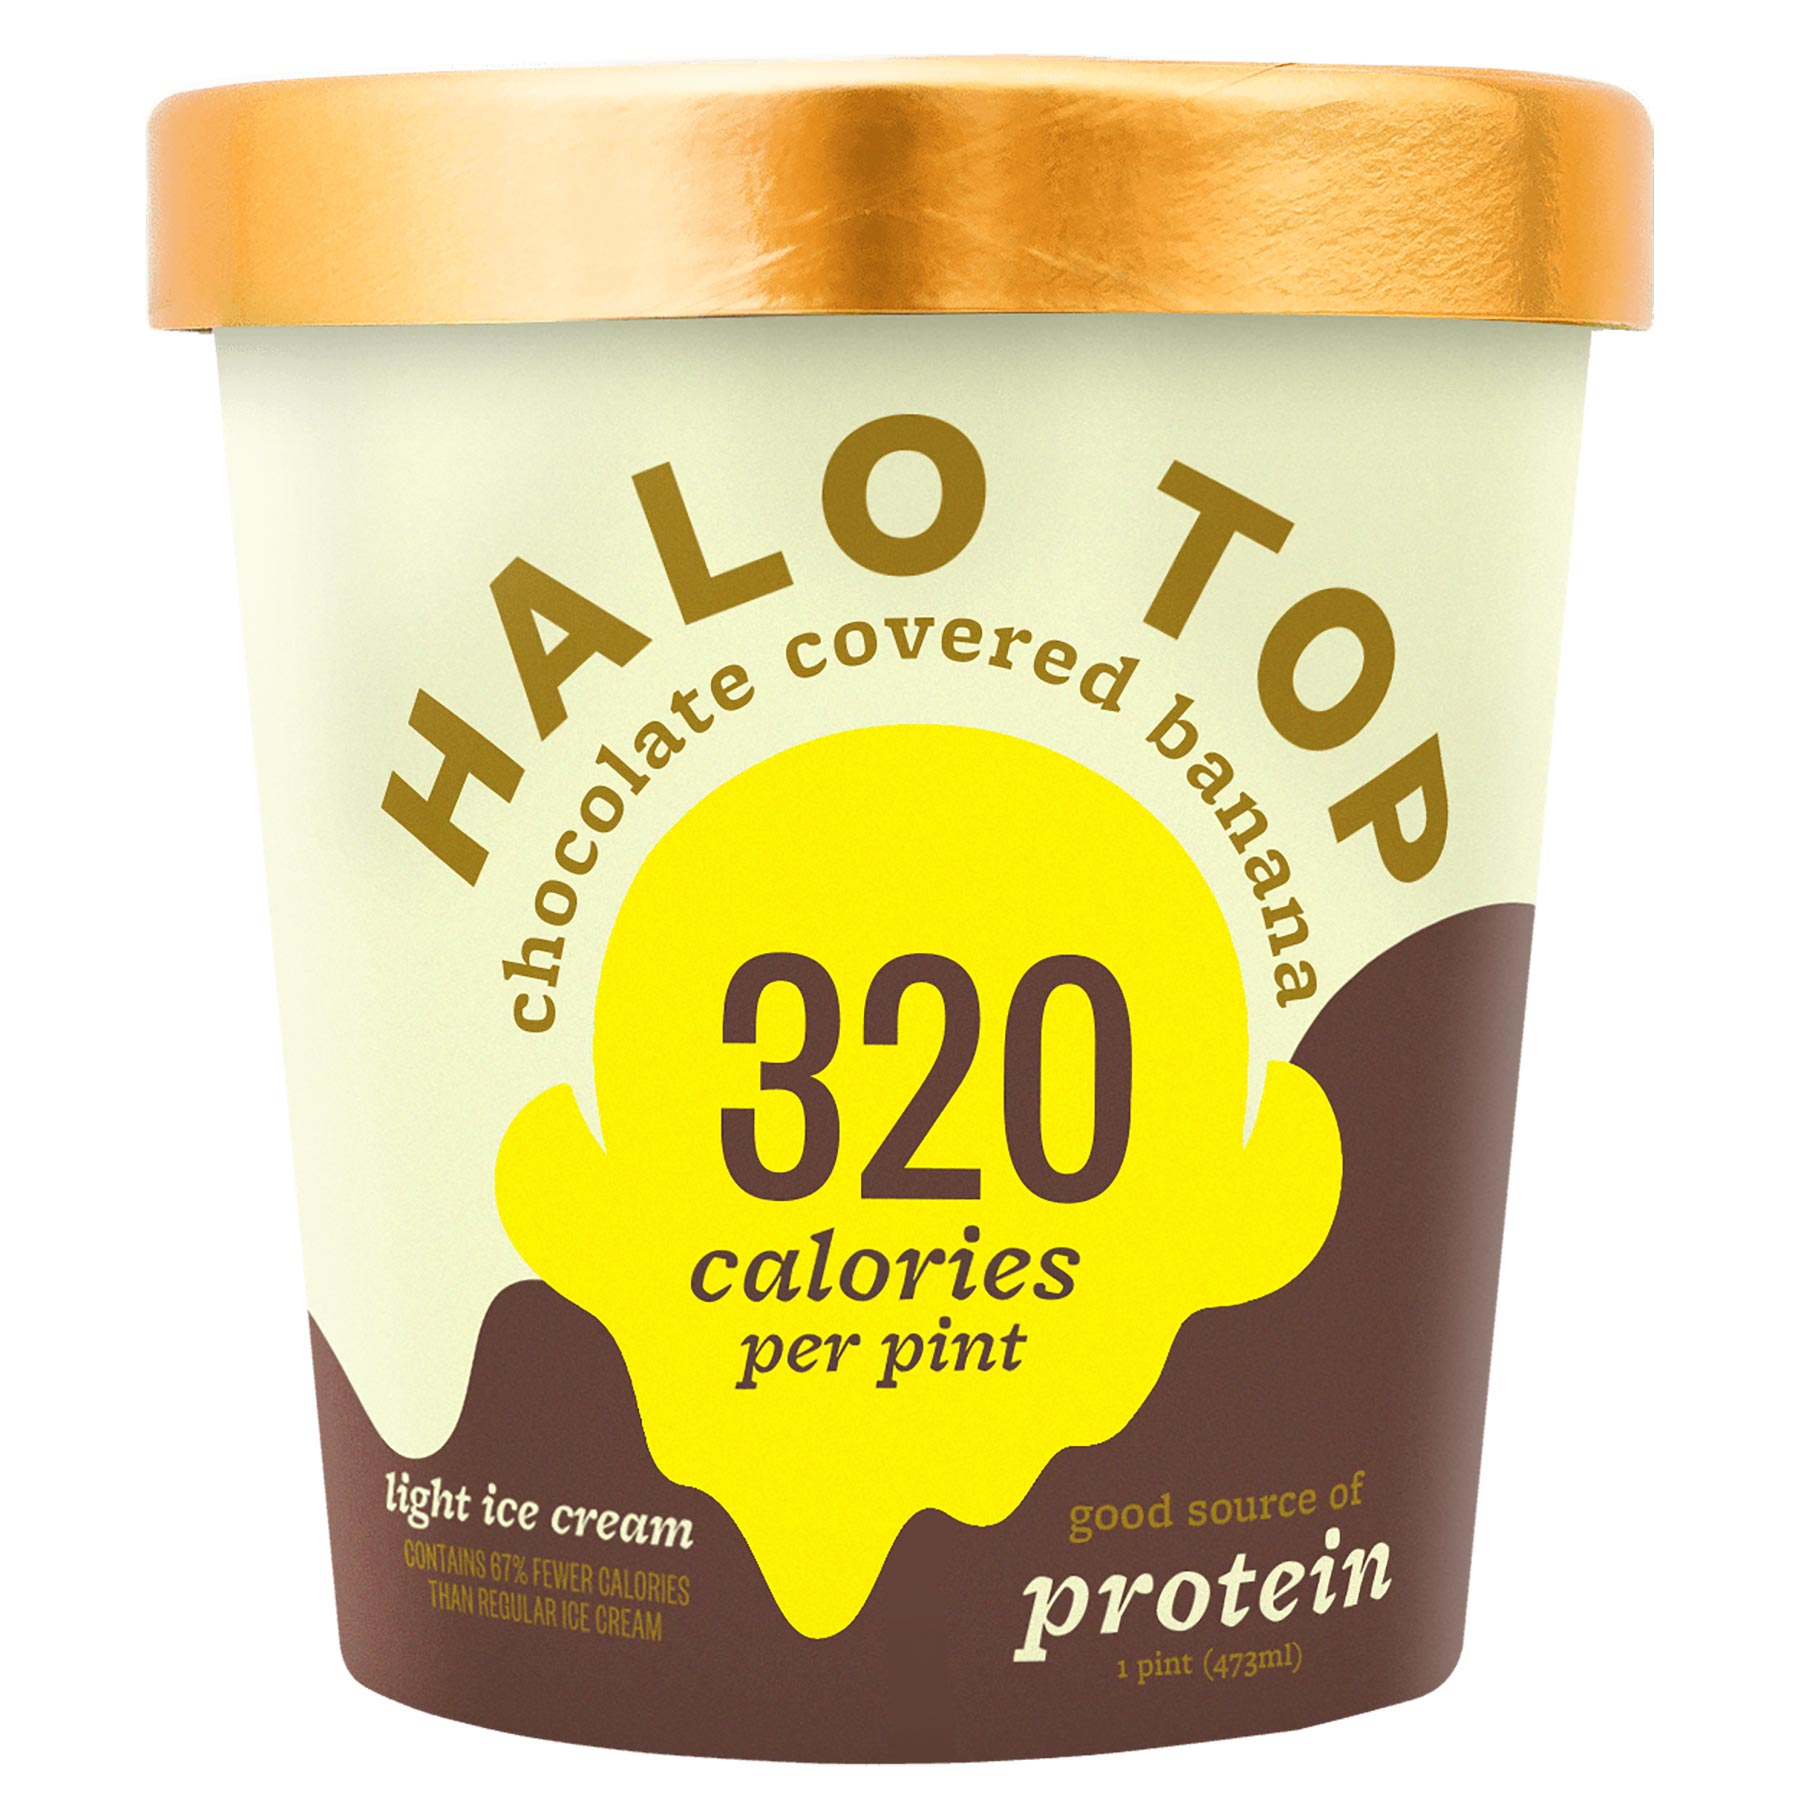 We Tasted (and Graded) Every Halo Top Flavor Available